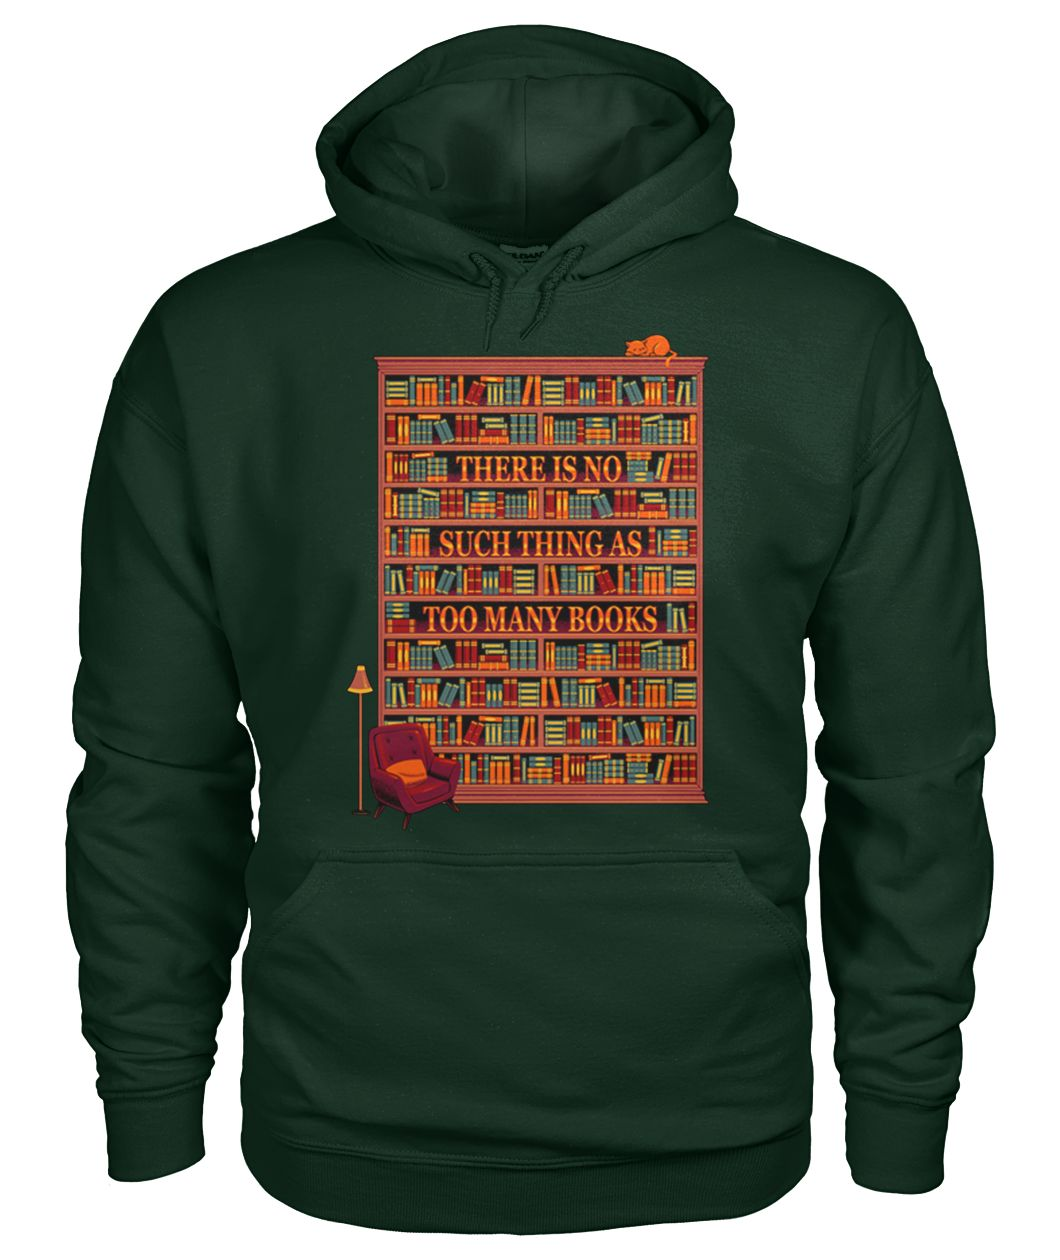 There is no such thing as too many books gildan hoodie